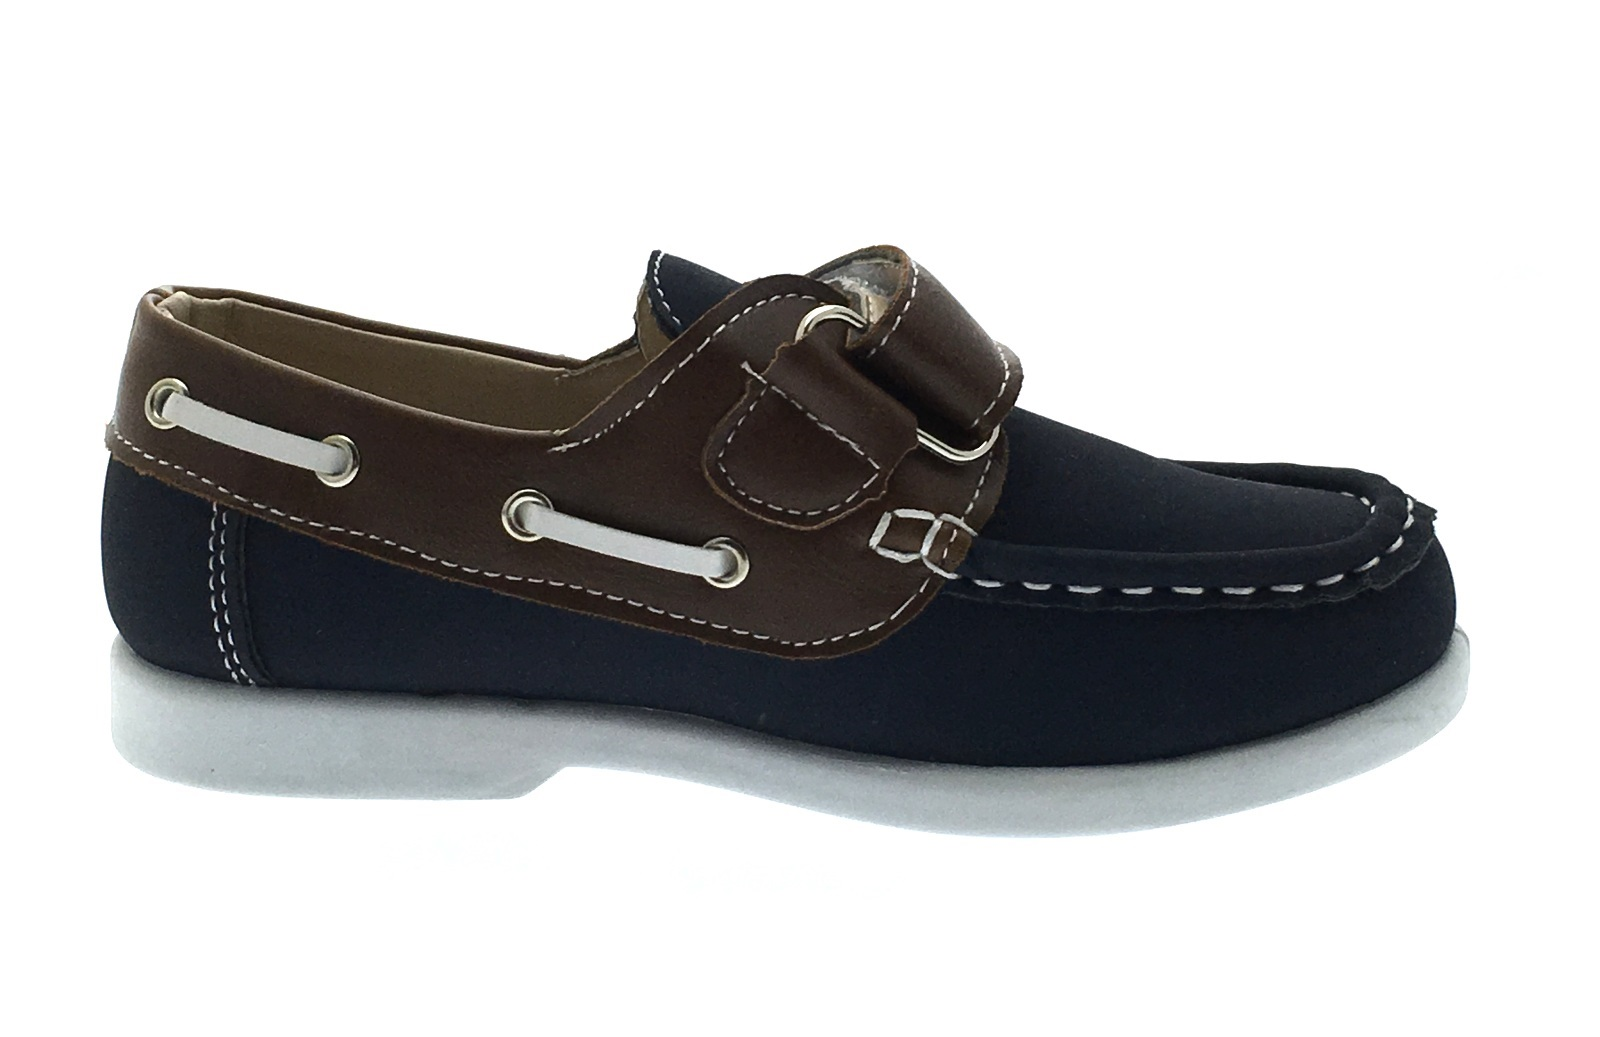 Discover the latest styles of men's boat shoes and deck sneakers! Find your fit at Famous Footwear! Women. View All. New Arrivals. Athletic Shoes. Boys. View All. New Arrivals. Athletic Shoes. Sandals. Casual Shoes. Dress Shoes. Light Up Shoes. Boots. Men's Boat Shoes Casual Shoes. Find the perfect boat shoe for men today at Famous.